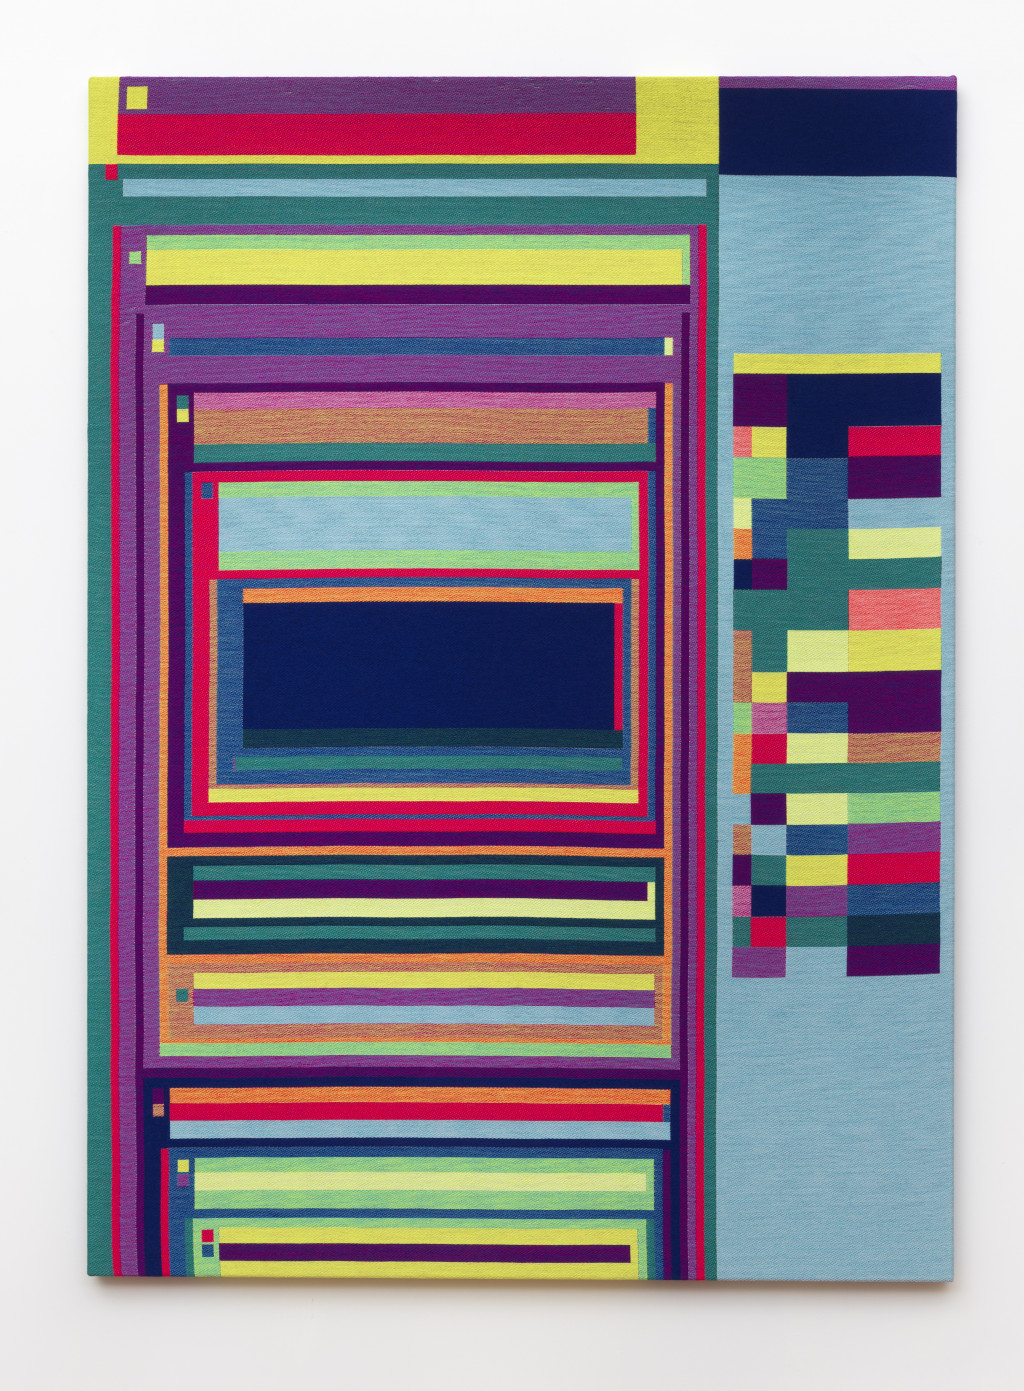 Rafaël Rozendaal, Abstract Browsing – REDDIT, 2016. Collection Stedelijk Museum Amsterdam, joined purchase of the Stedelijk Museum Amsterdam and MOTI. The purchase on the part of the Stedelijk Museum is generously supported by the Tijl Aankoop Fo